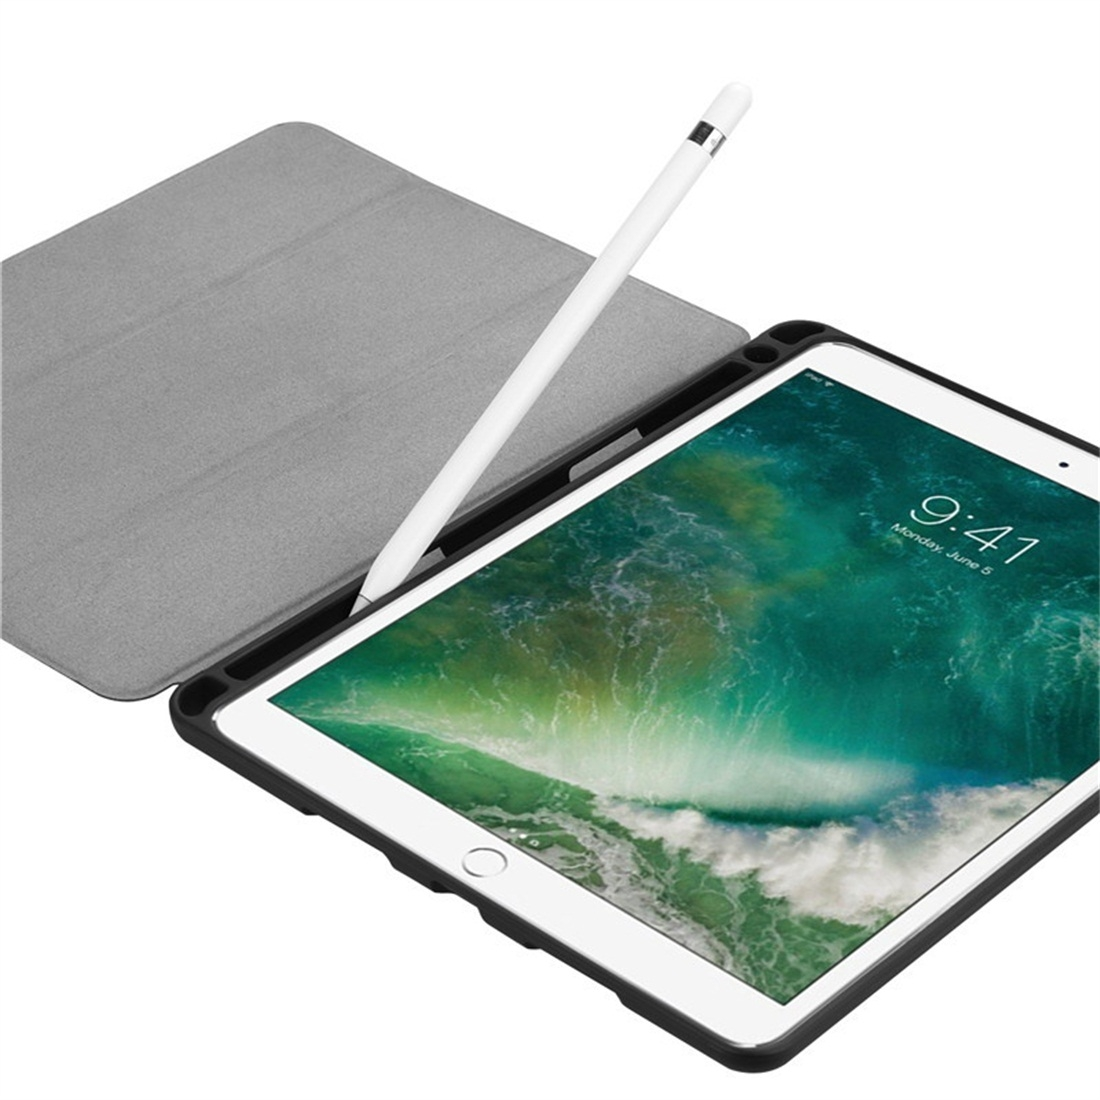 Custer Texture Leather iPad Air 3 Case (10.5 Inch)/ iPad Air (2019), with Pen Holder (Black)